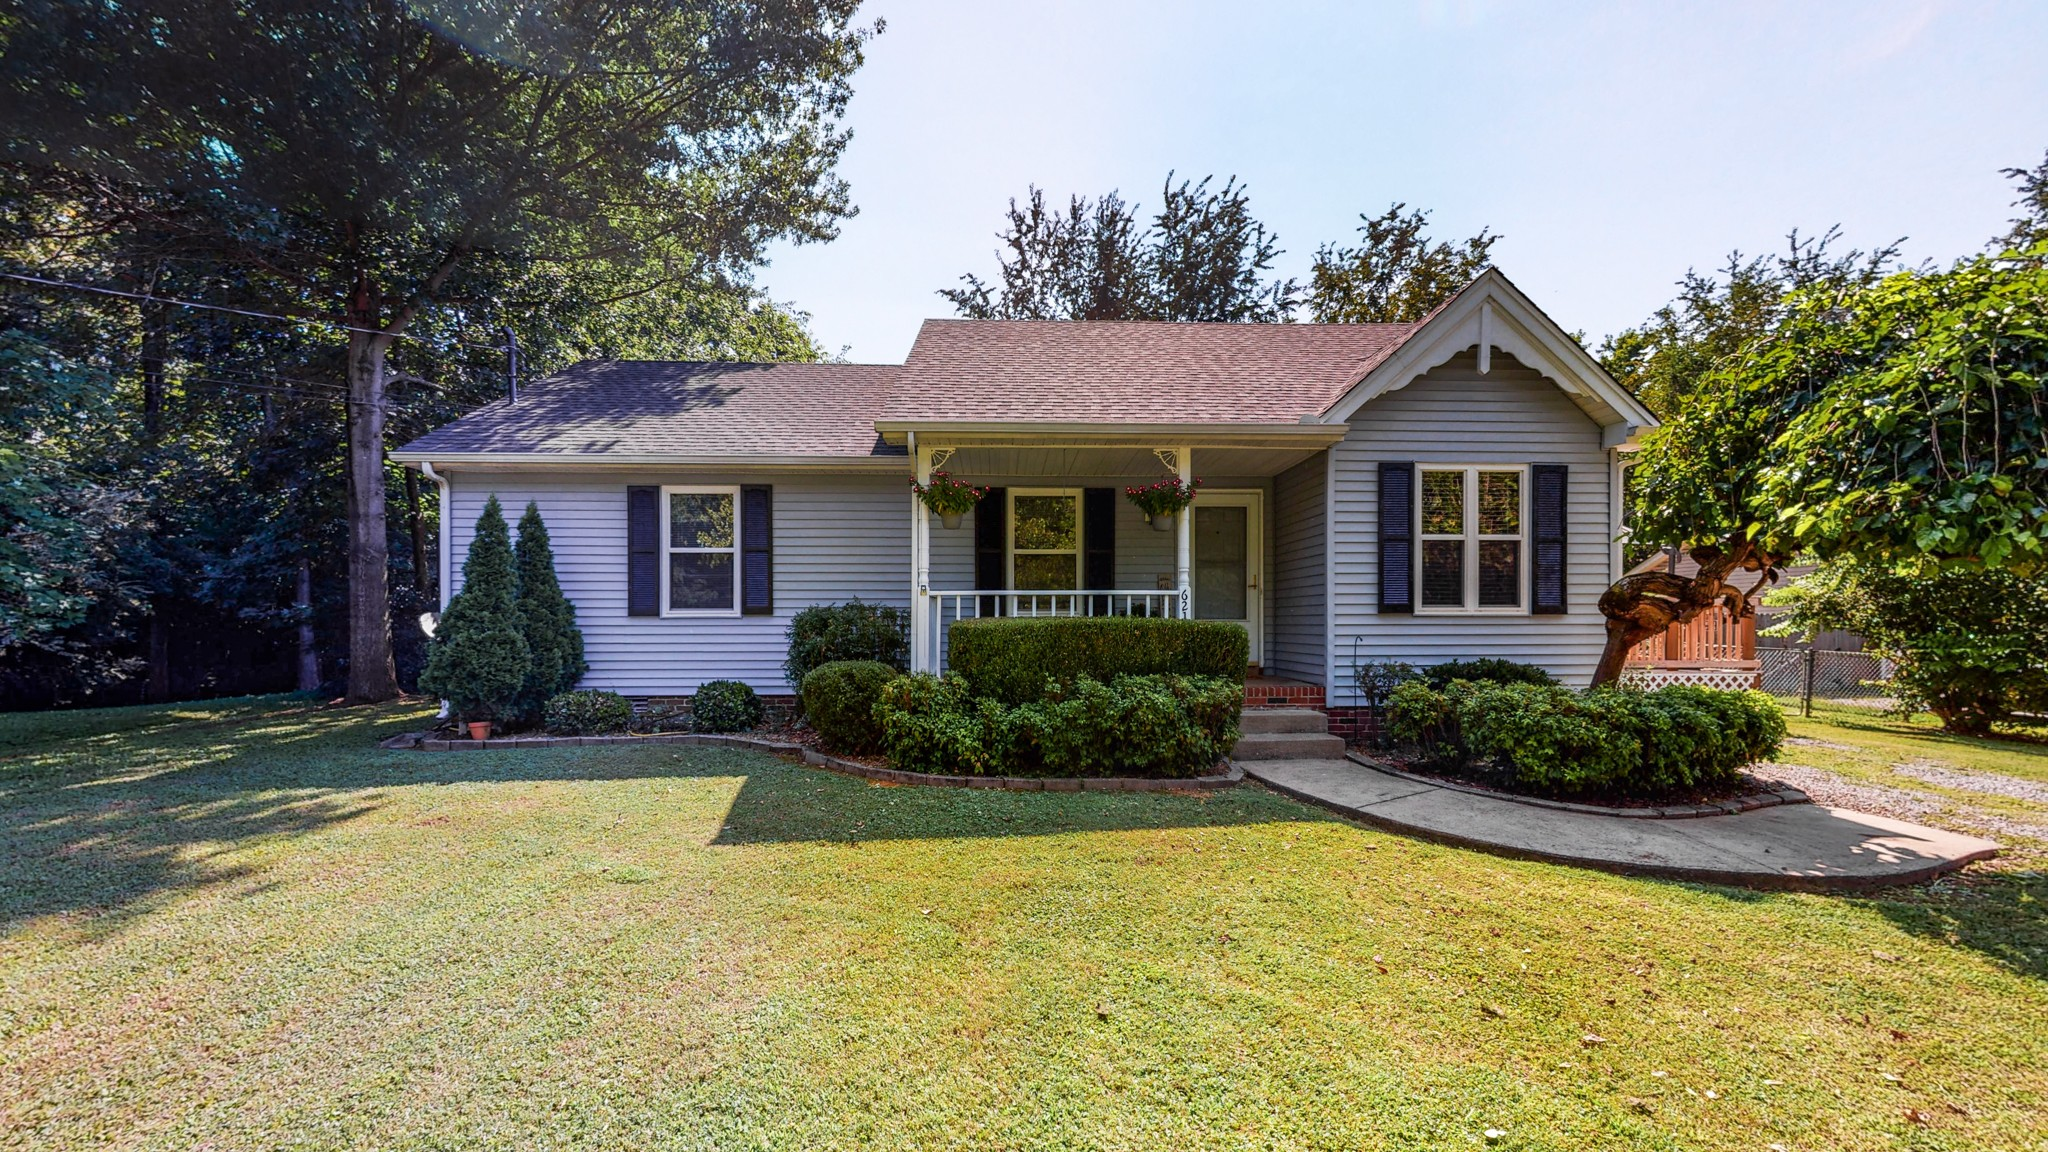 621 Bragg Ave Property Photo - Smyrna, TN real estate listing